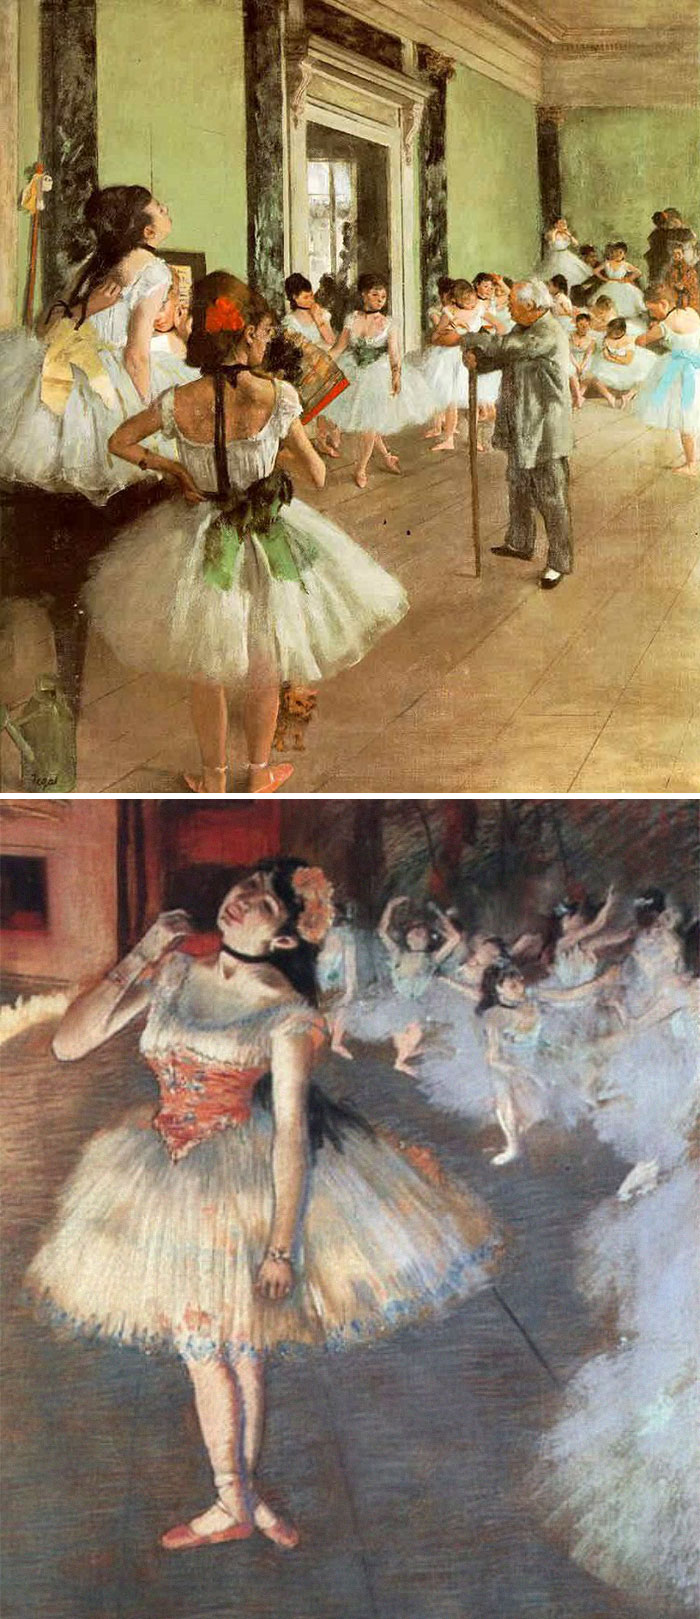 how to identify famous painters - degas